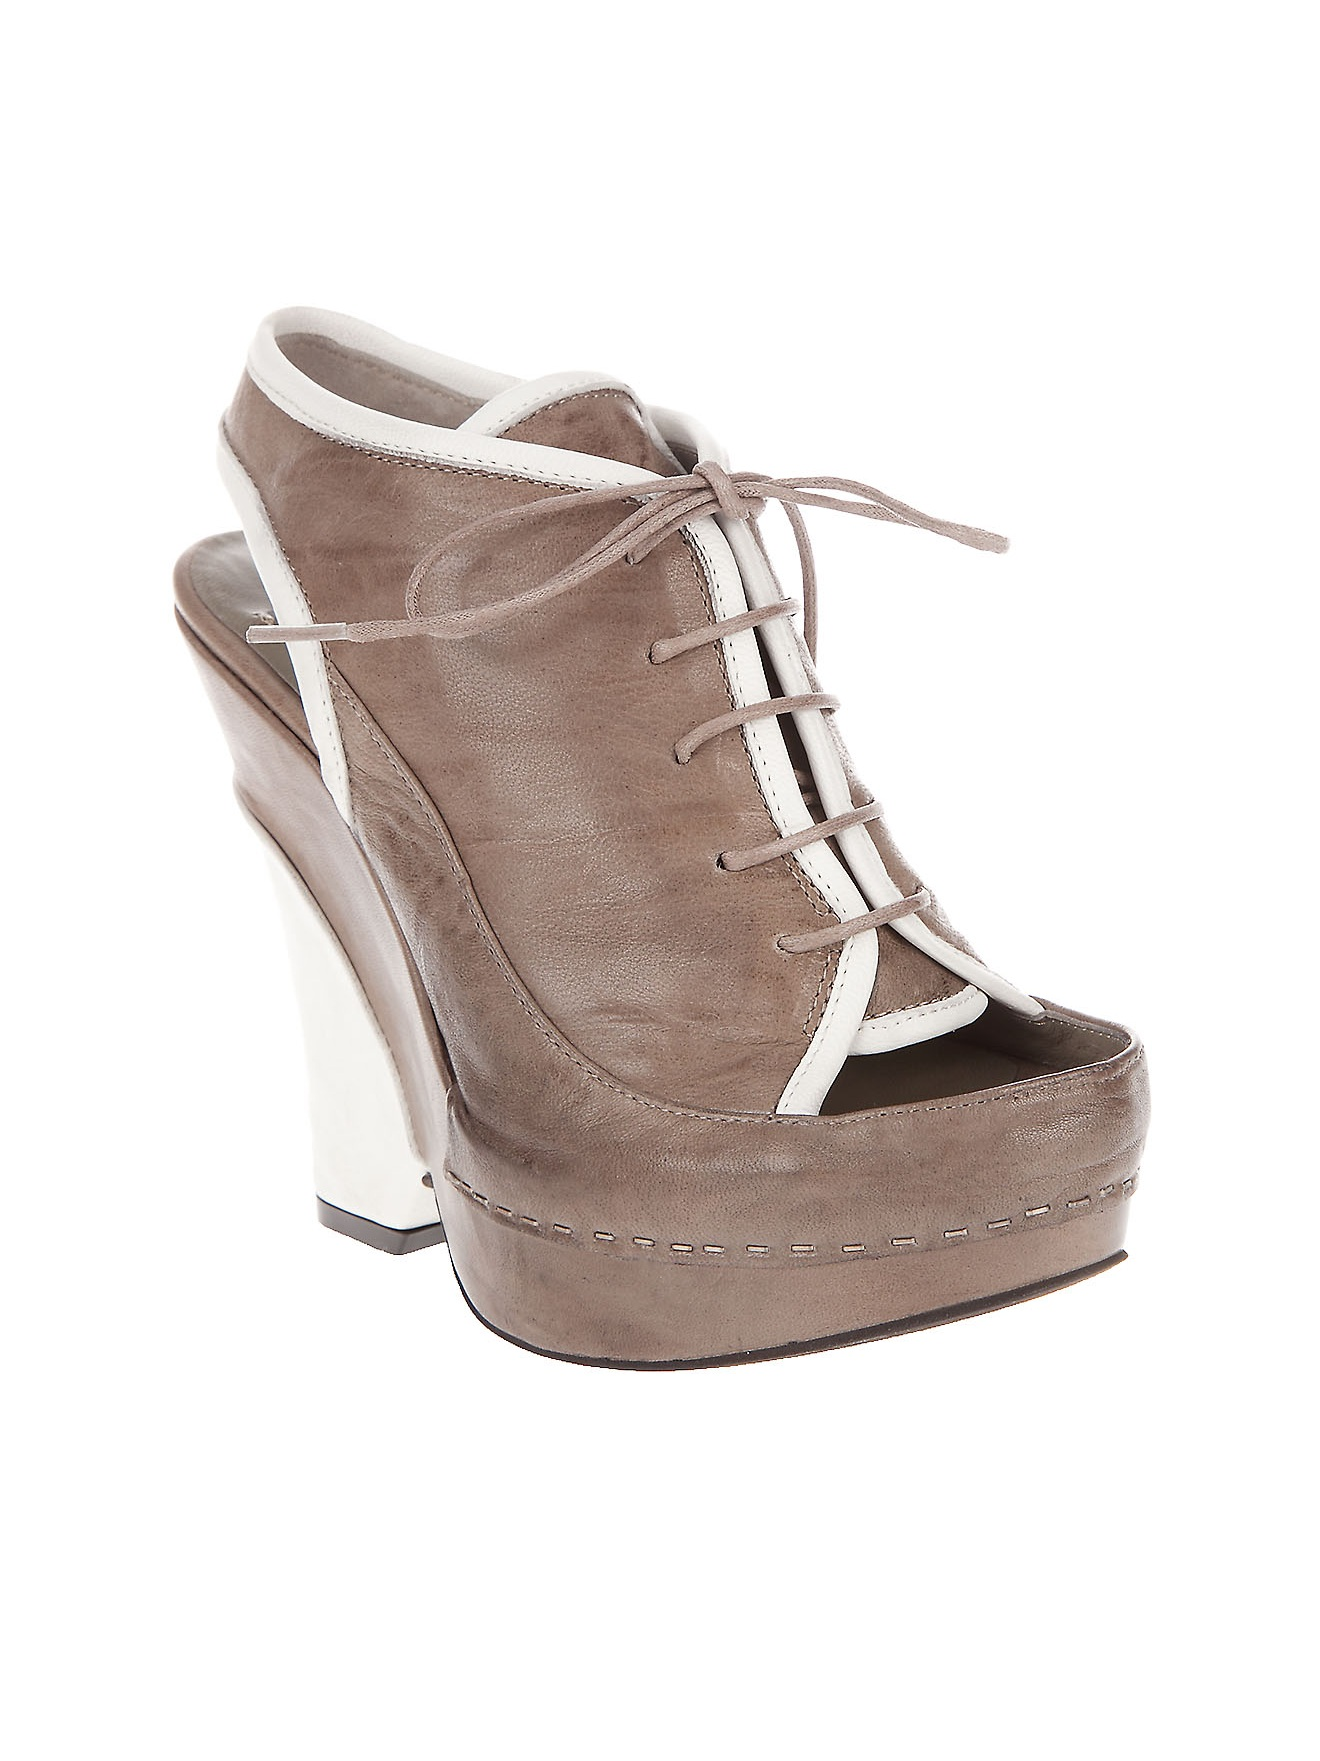 malloni platform wedge shoe in beige grey lyst